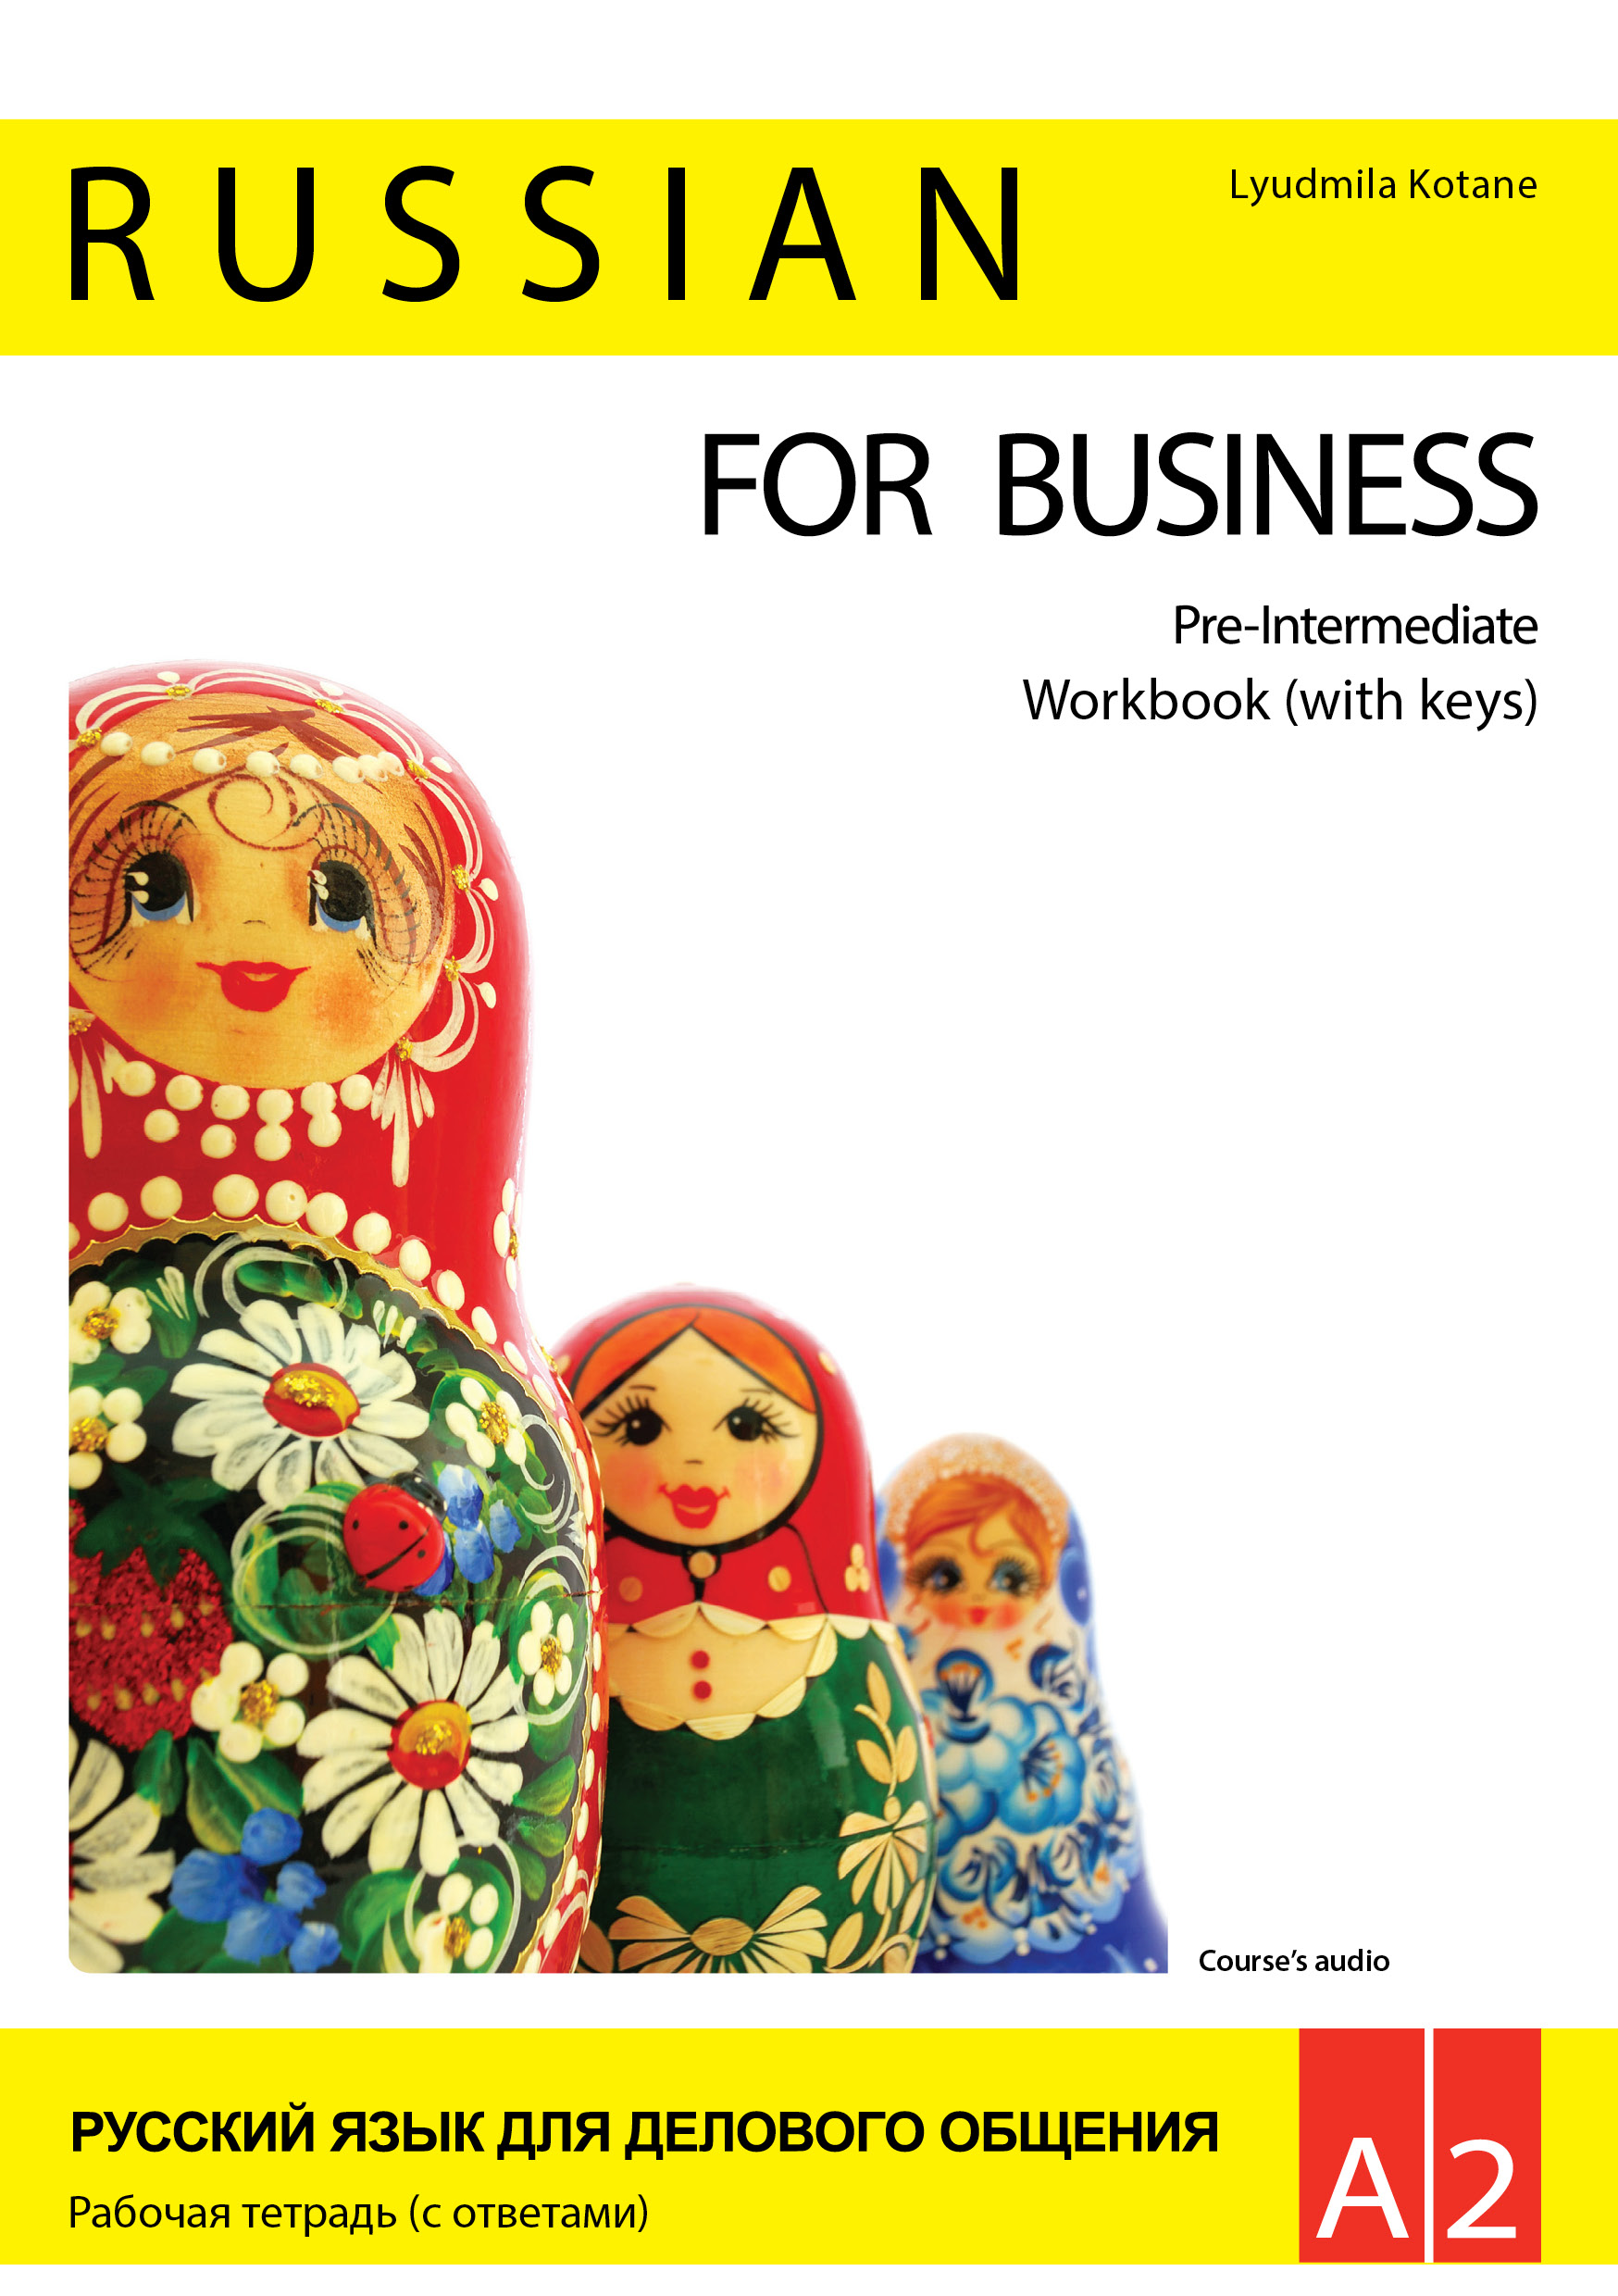 A2_workbook_cover